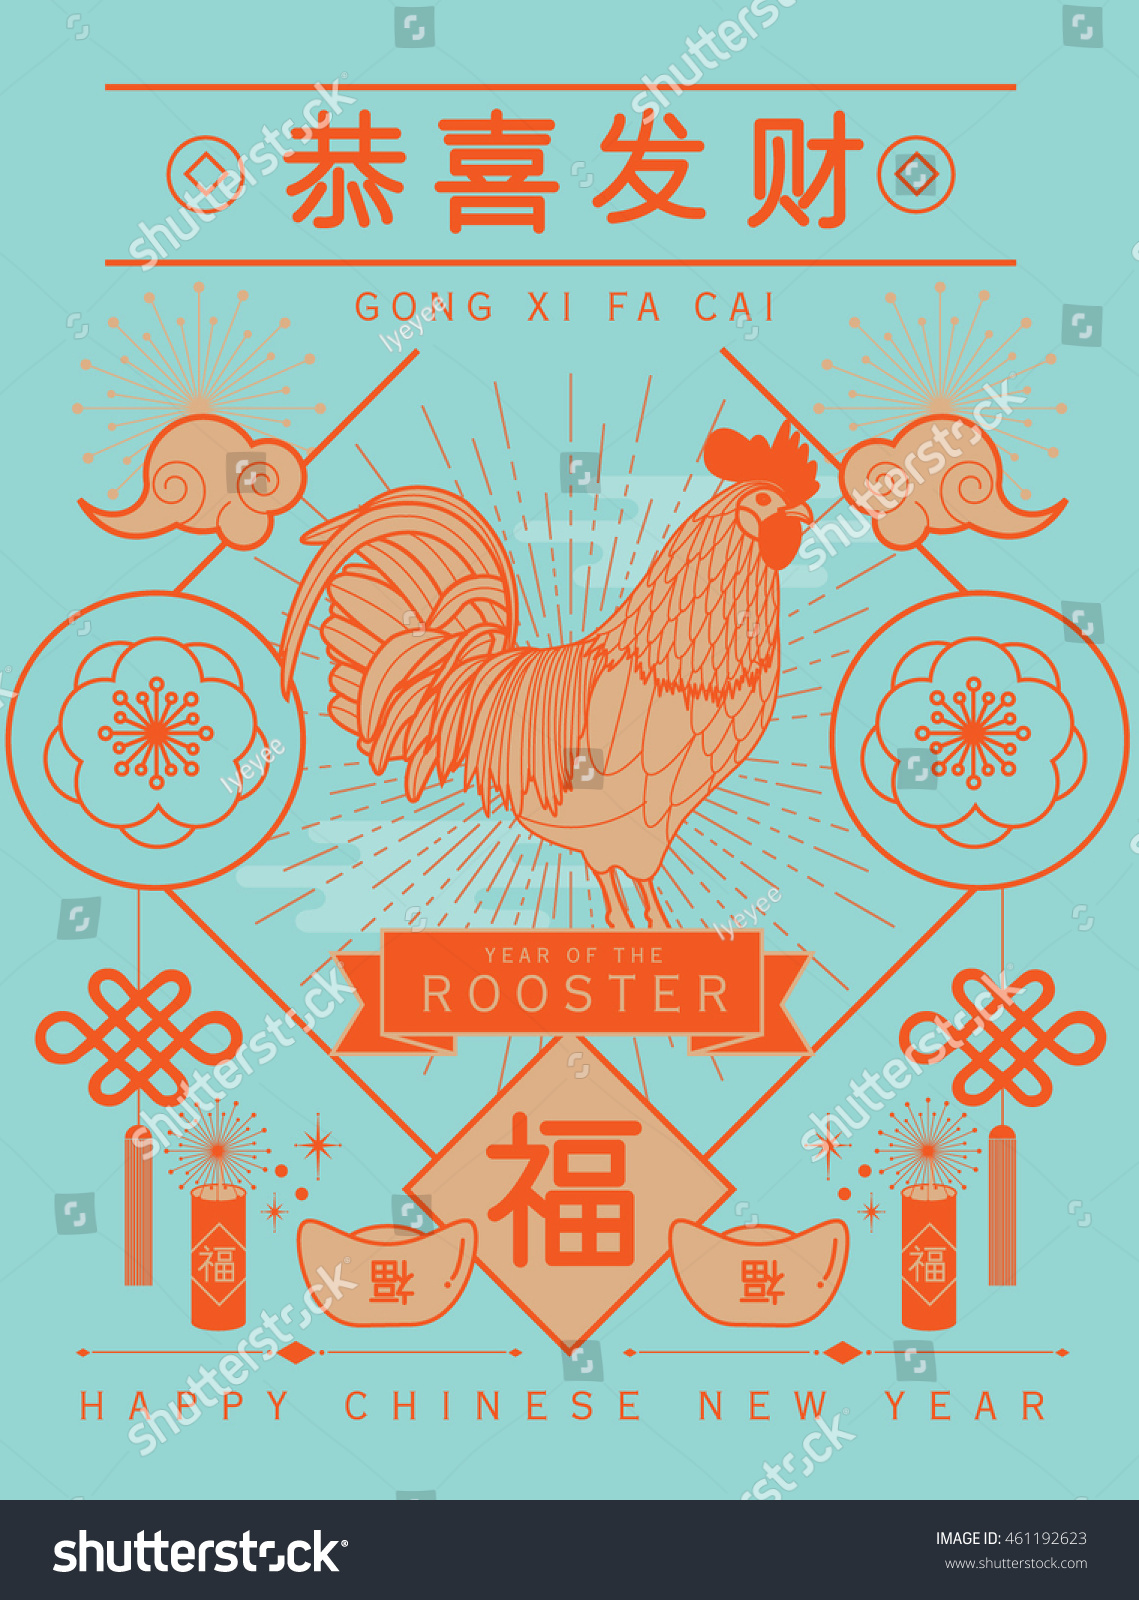 Chinese Calendar Illustration : Chinese new year rooster template stock vector